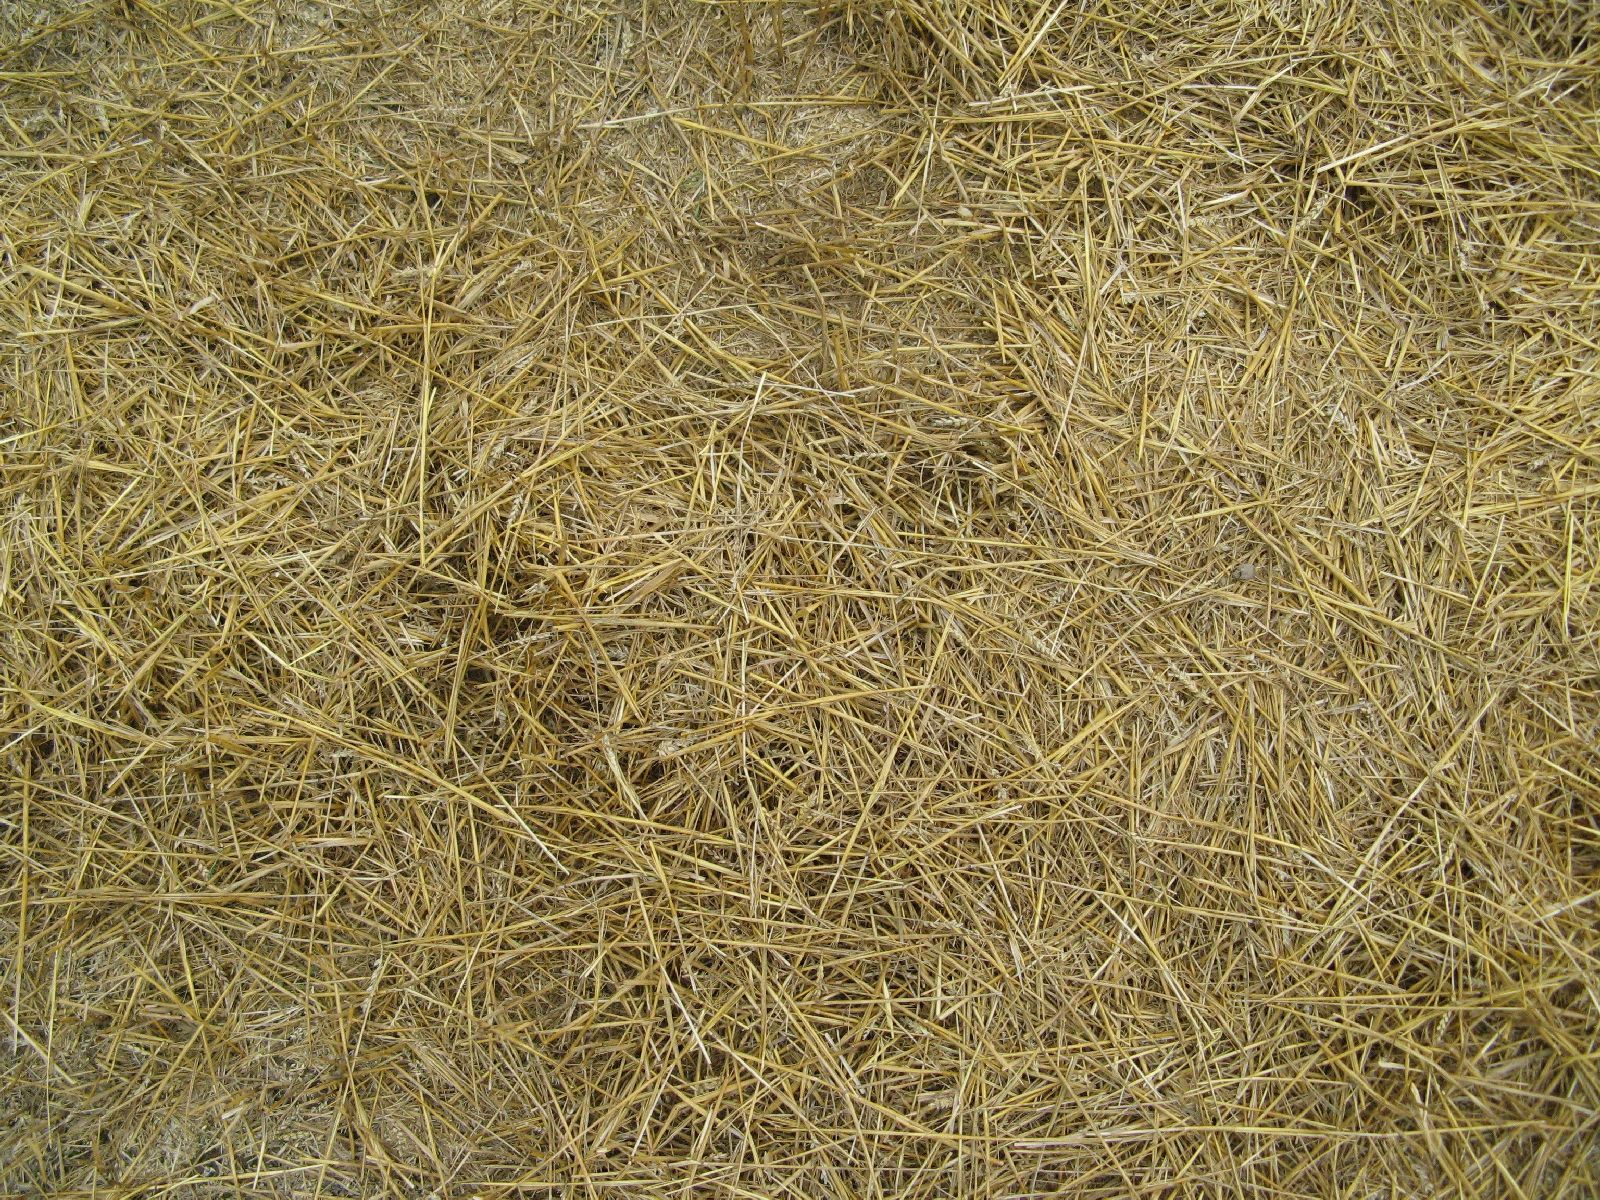 Ground-Nature_Texture_B_00933